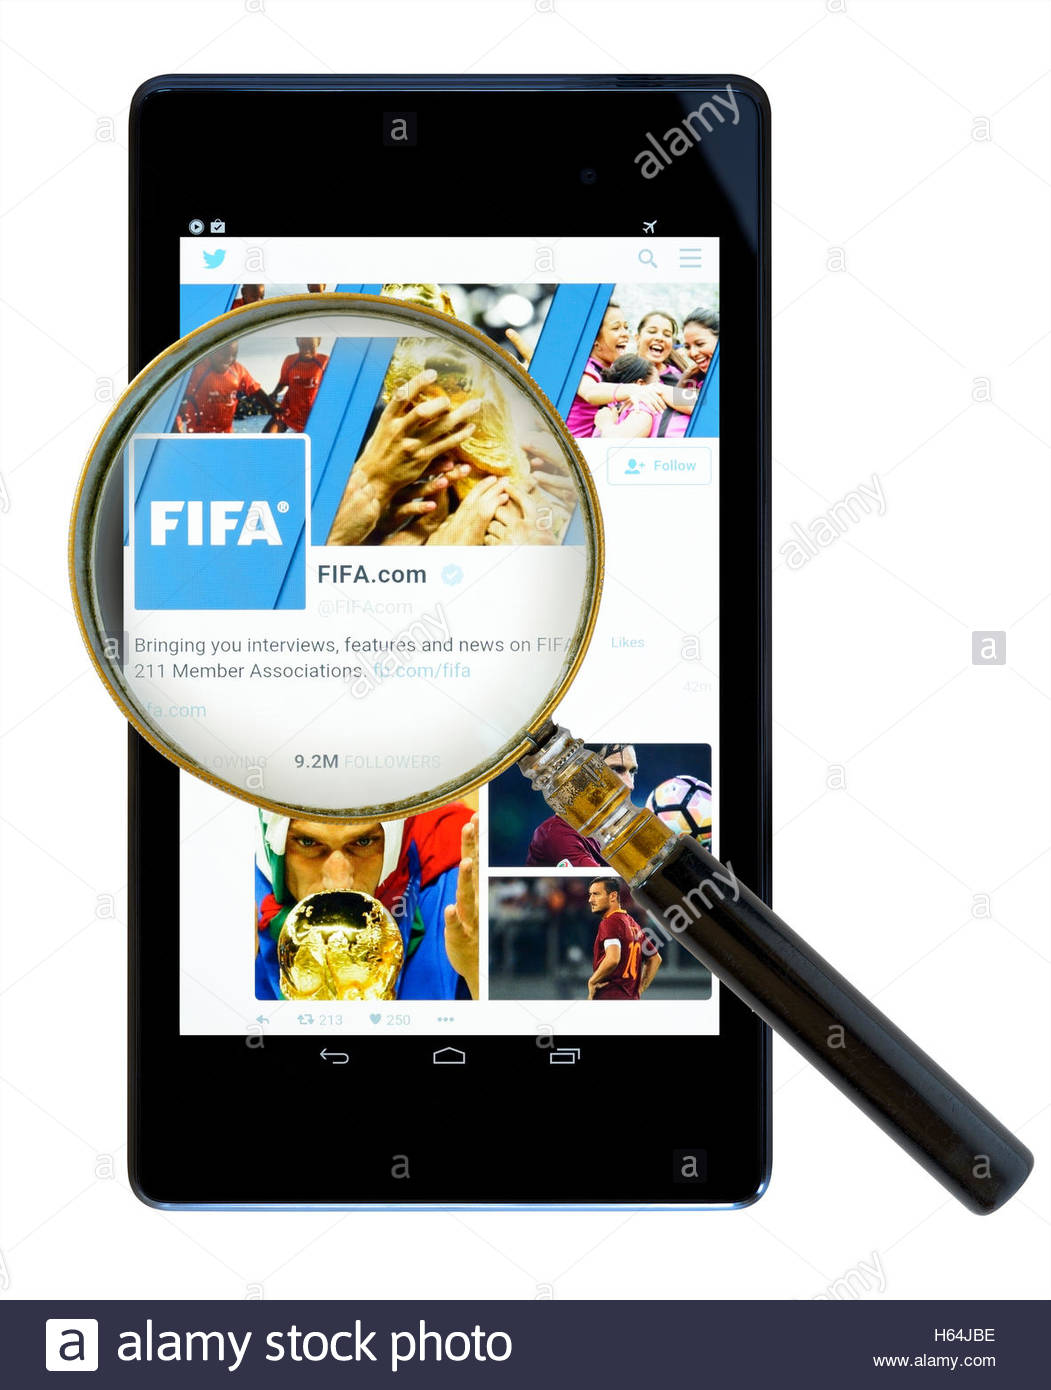 FIFA website shown on a tablet computer, Dorset, England, UK Stock Photo